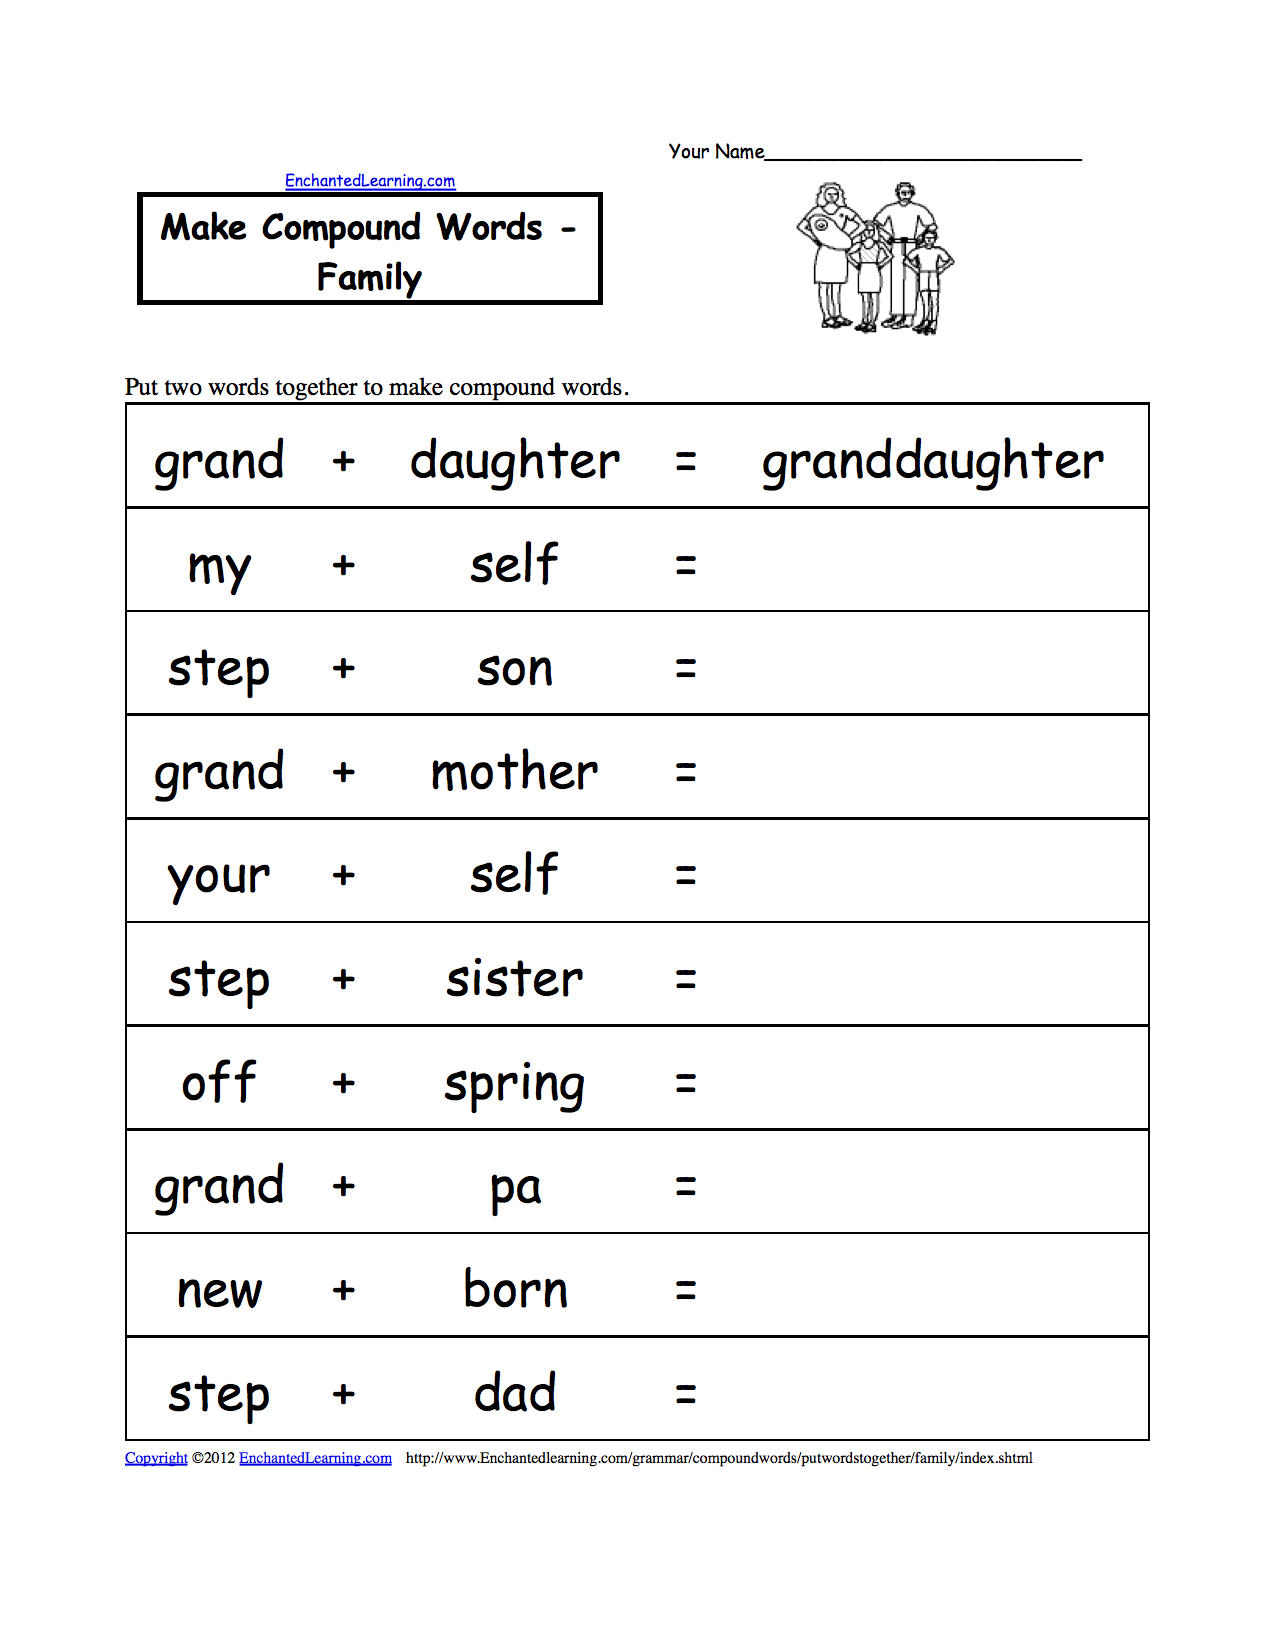 worksheet Family Tree Worksheets family theme page spelling worksheets at enchantedlearning com make compound words printable worksheet